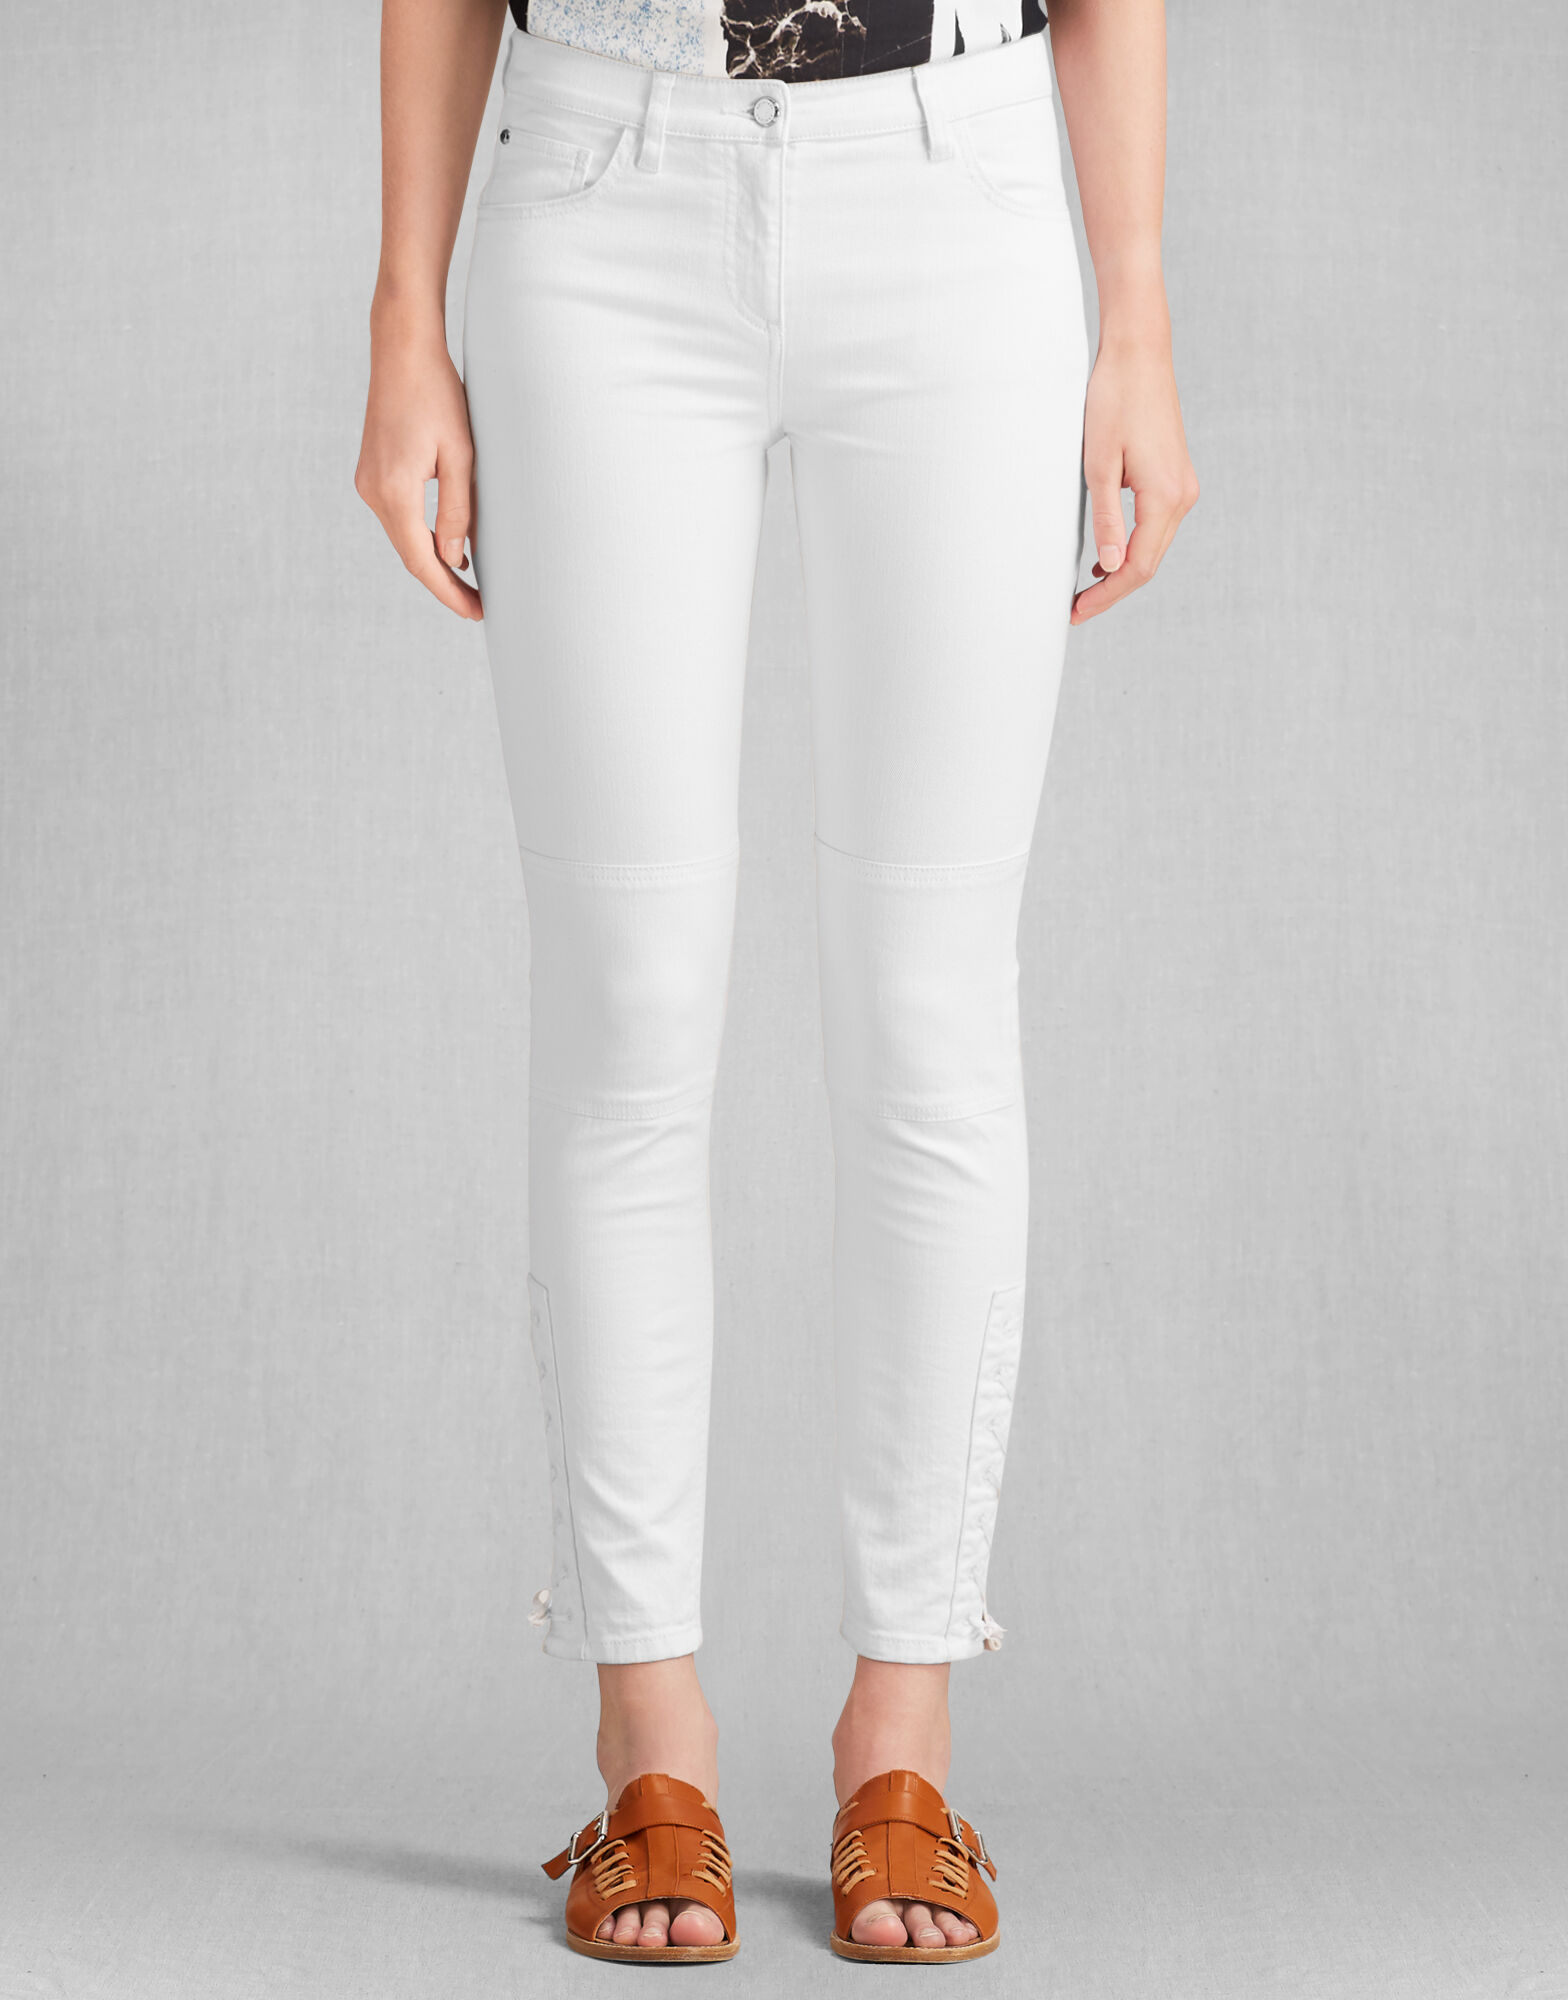 Off White Jeans Womens 6Jy4ldKV